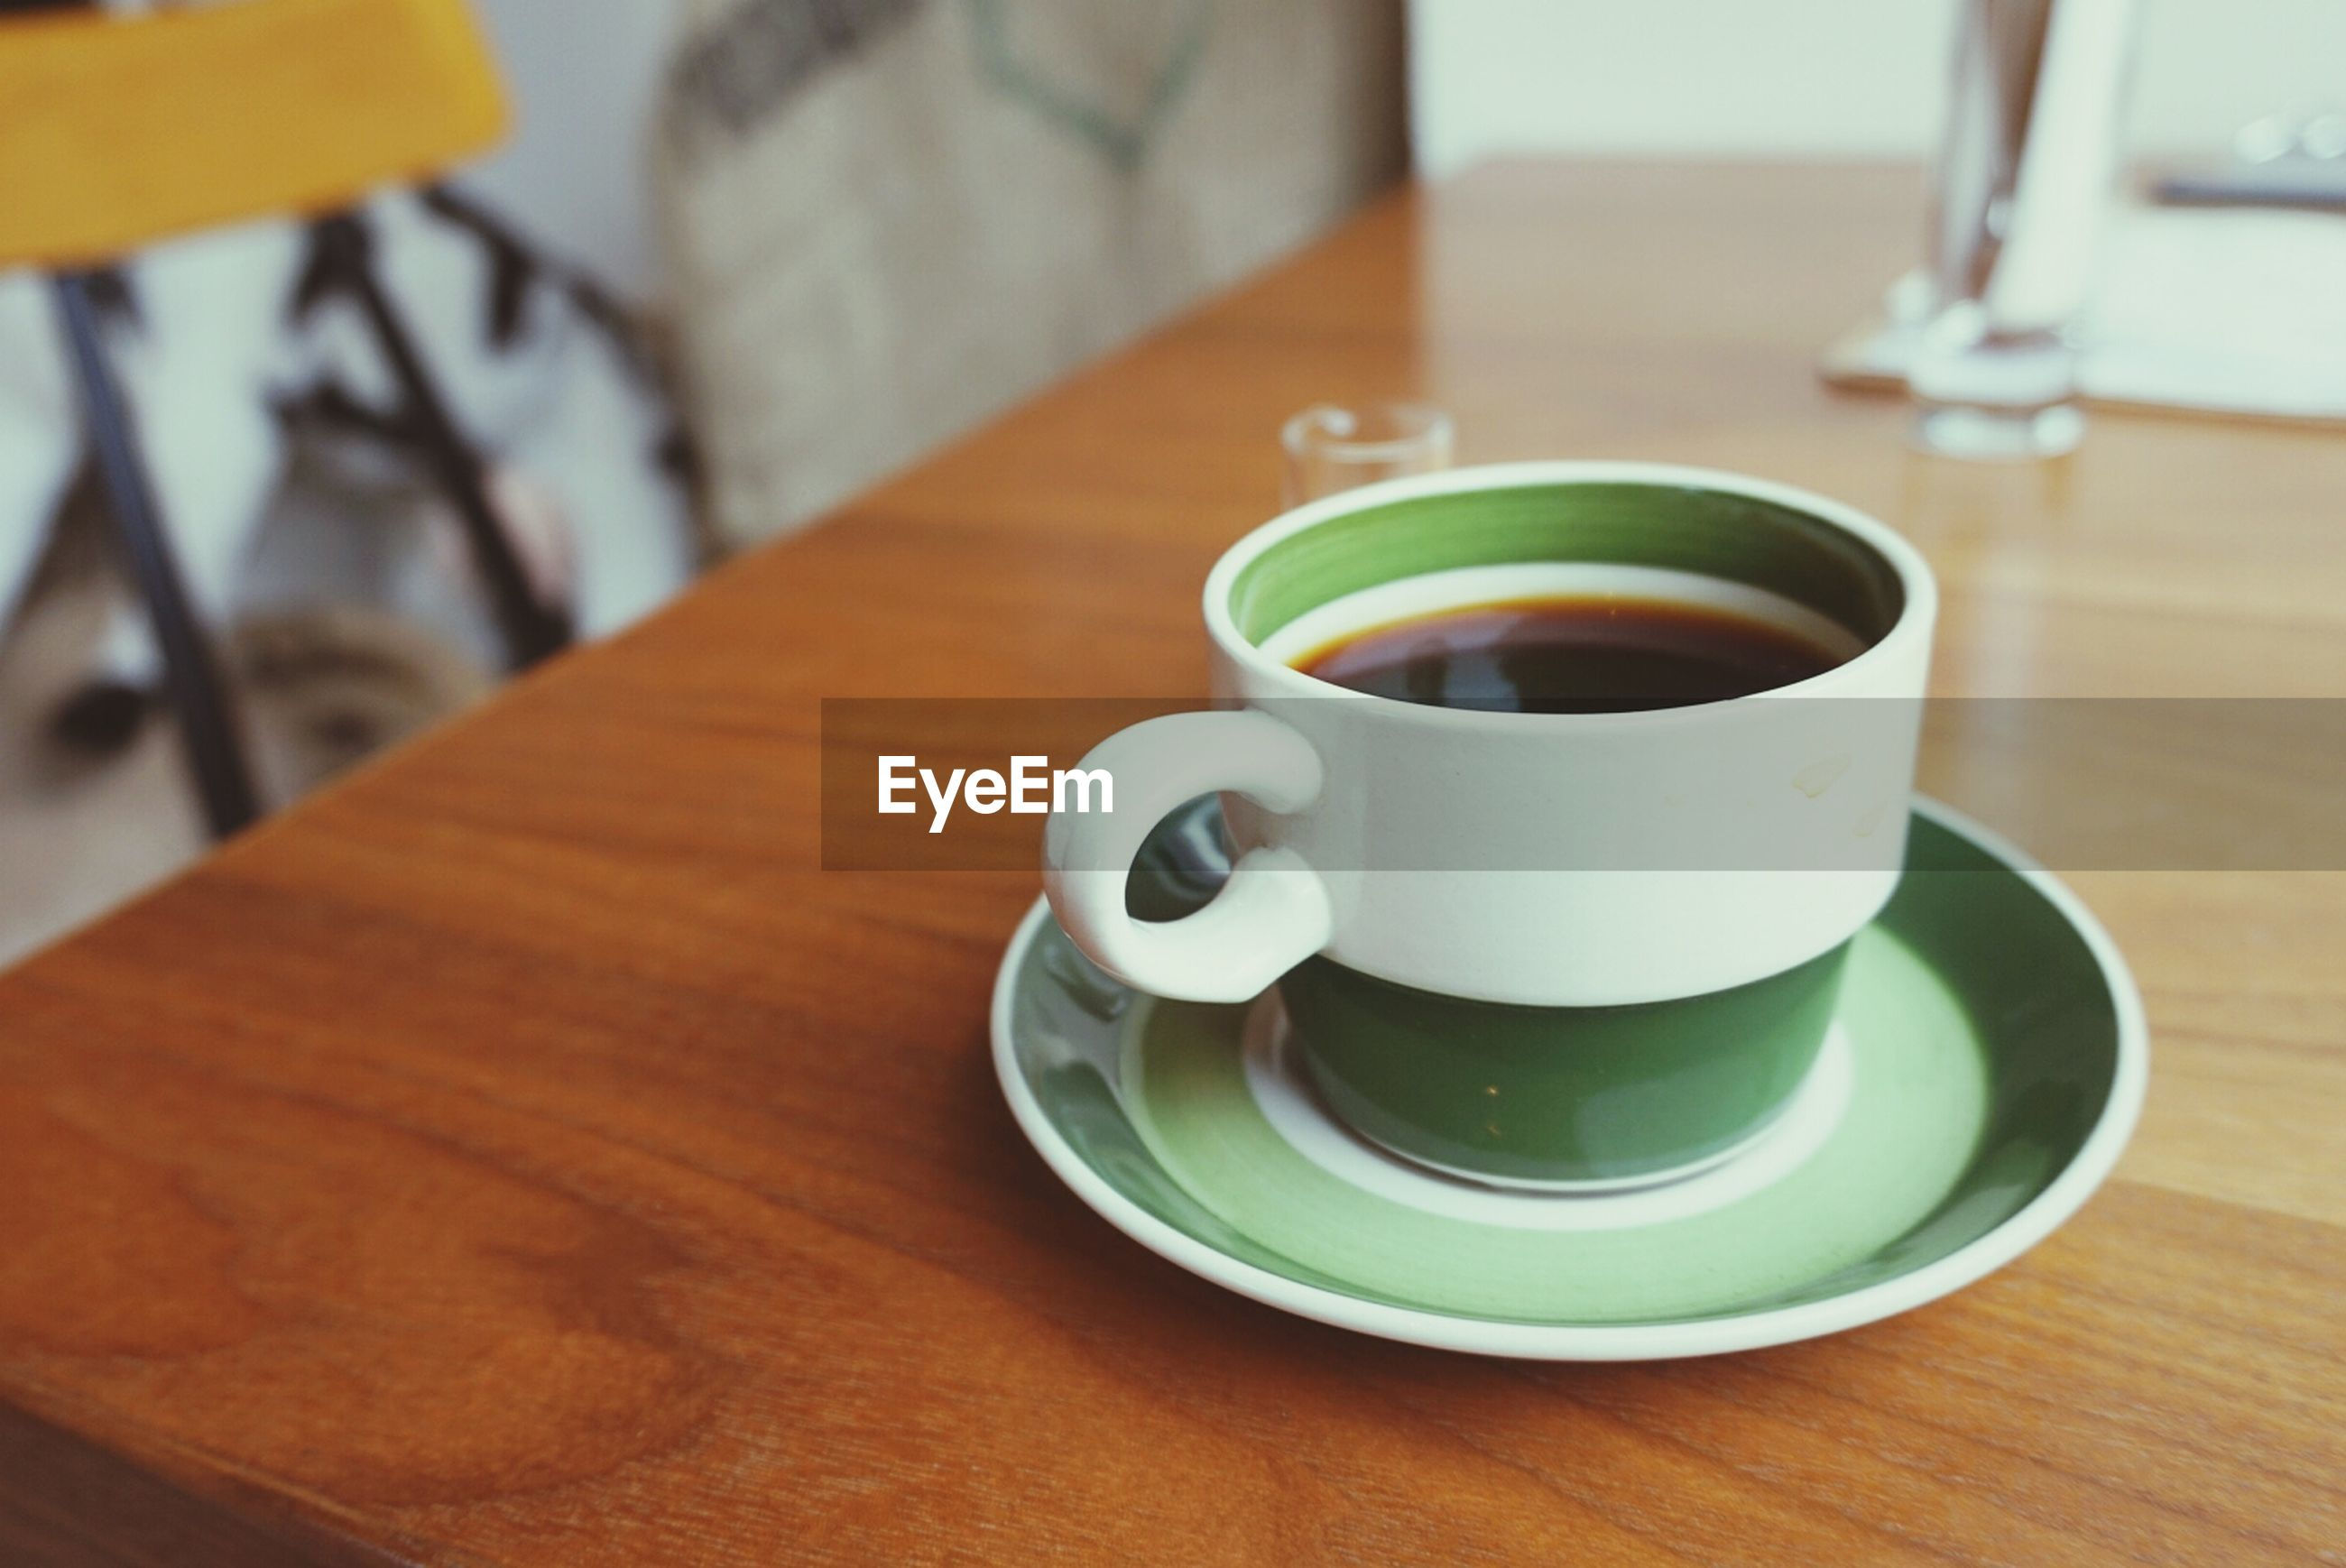 drink, coffee cup, refreshment, table, food and drink, saucer, indoors, coffee - drink, freshness, coffee, cup, still life, wood - material, close-up, beverage, tea cup, frothy drink, spoon, high angle view, tea